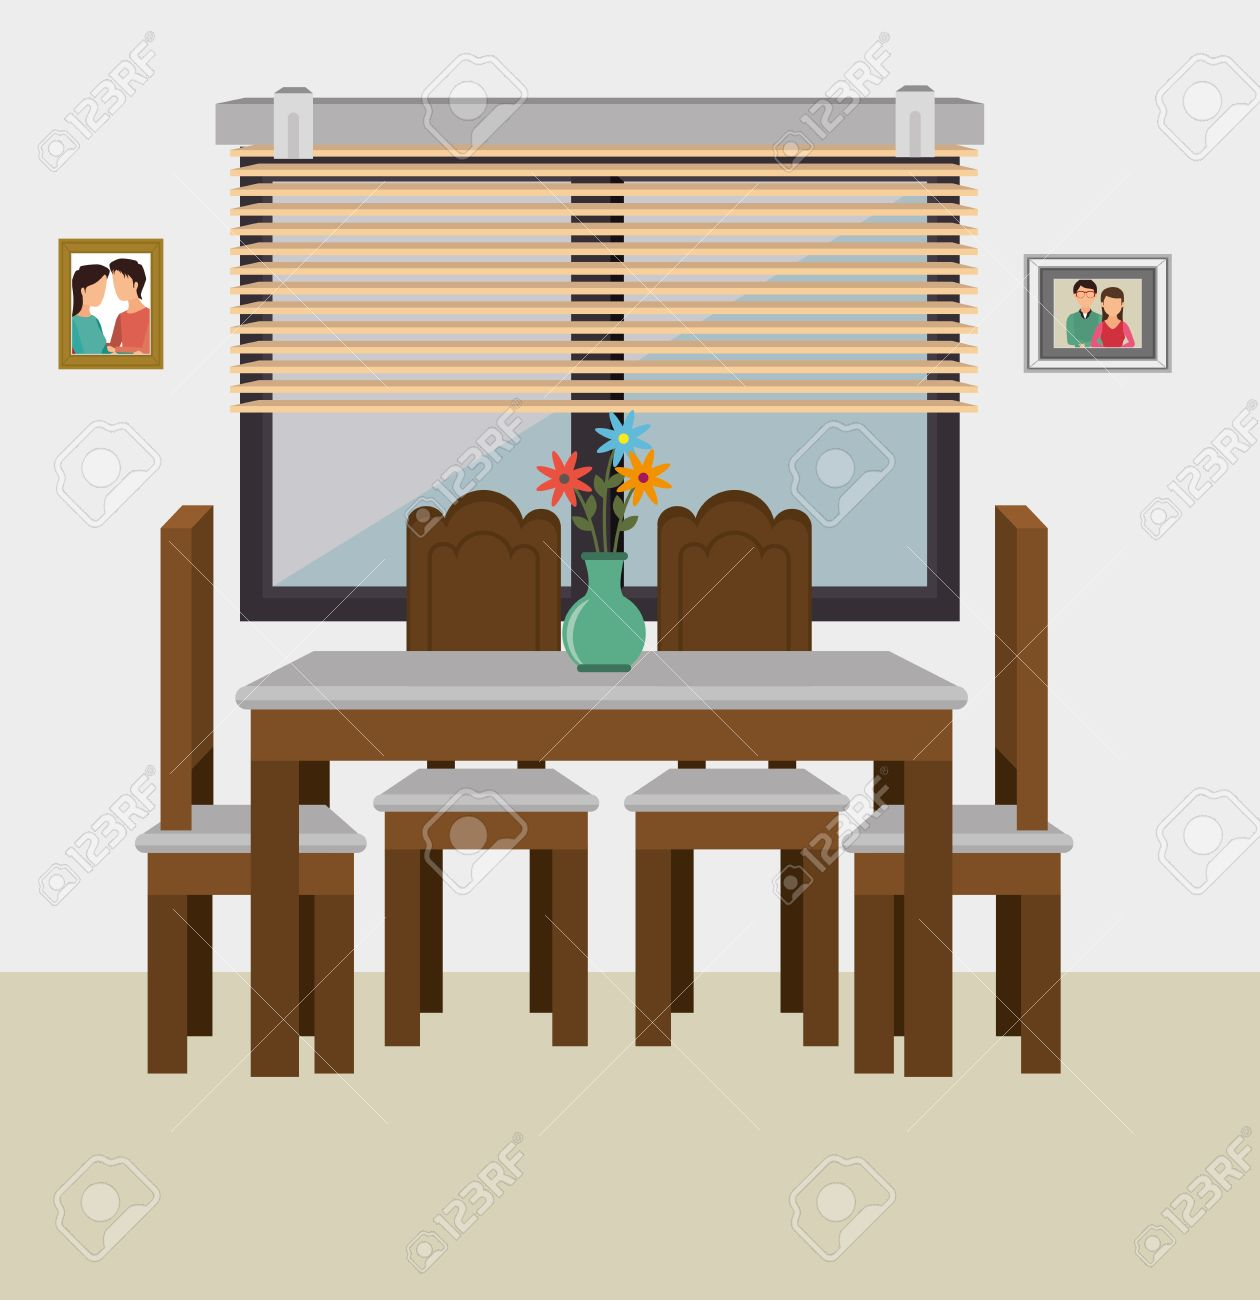 Dining Room Interior Graphic Design Vector Illustration Eps10 Stock